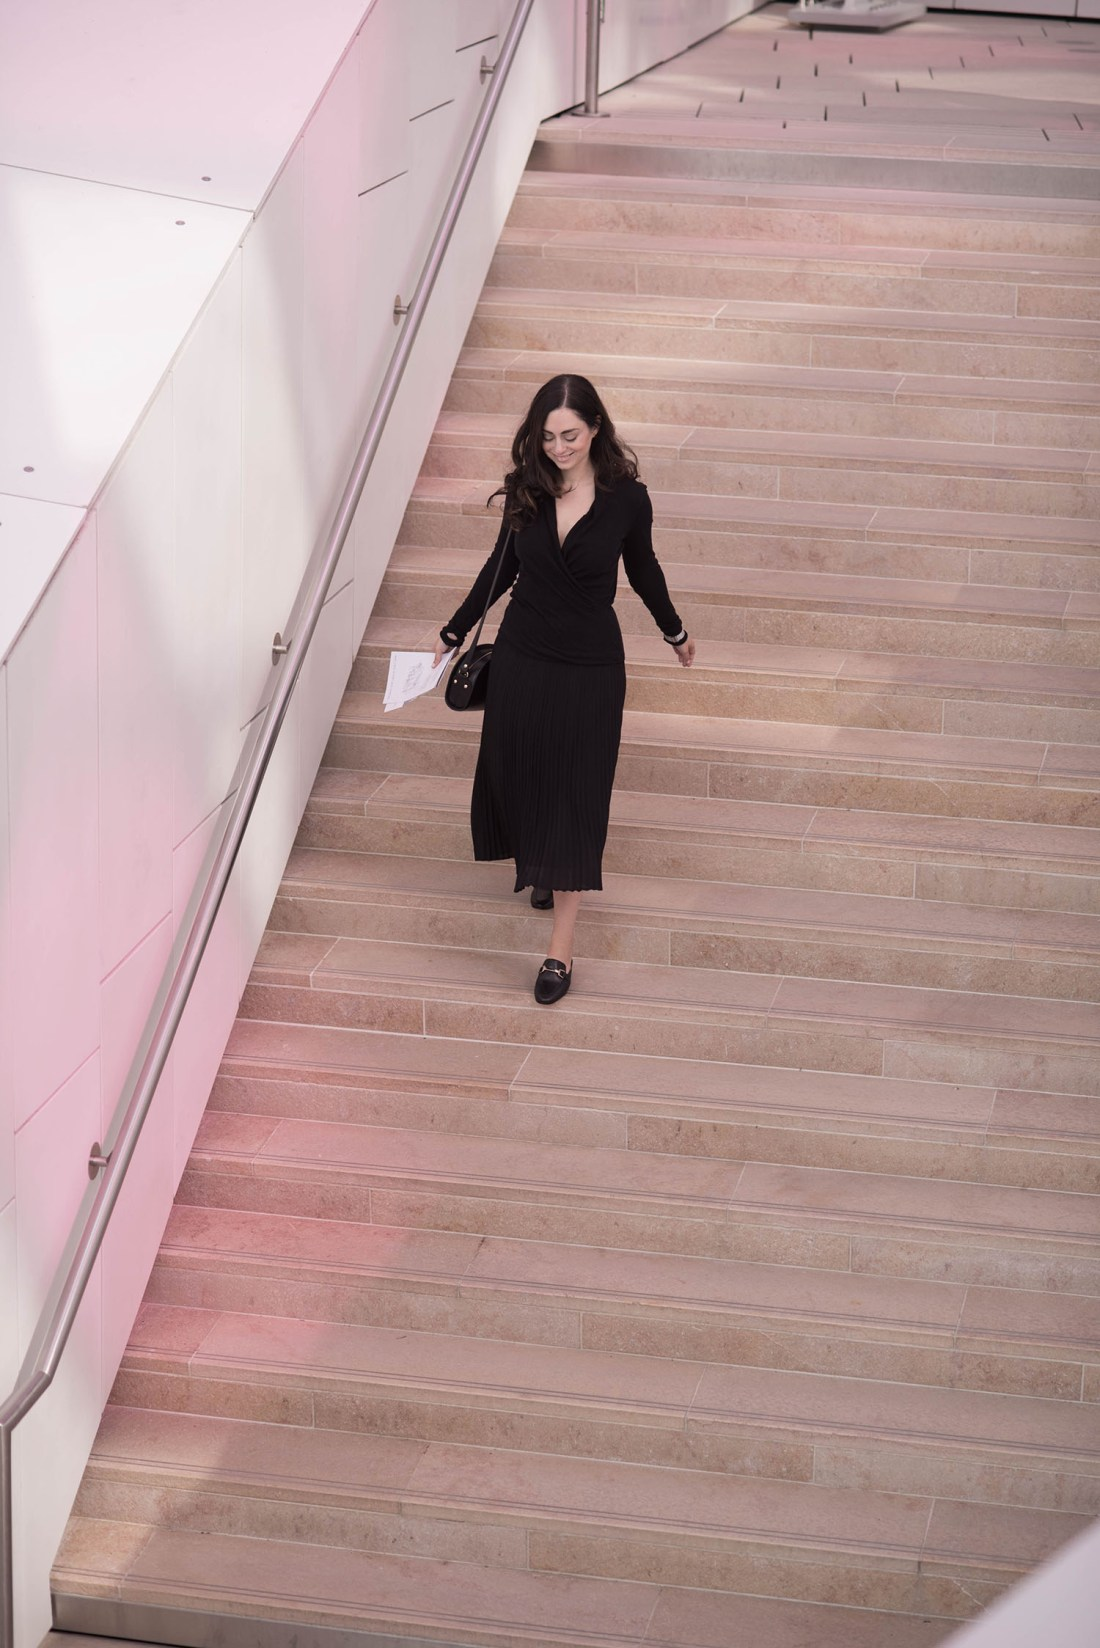 Fashion blogger Cee Fardoe of Coco & Vera walks down the stairs at the Fondation Louis Vuitton in Paris wearing an Aritzia pleated skirt and an Enza Costa wrap top